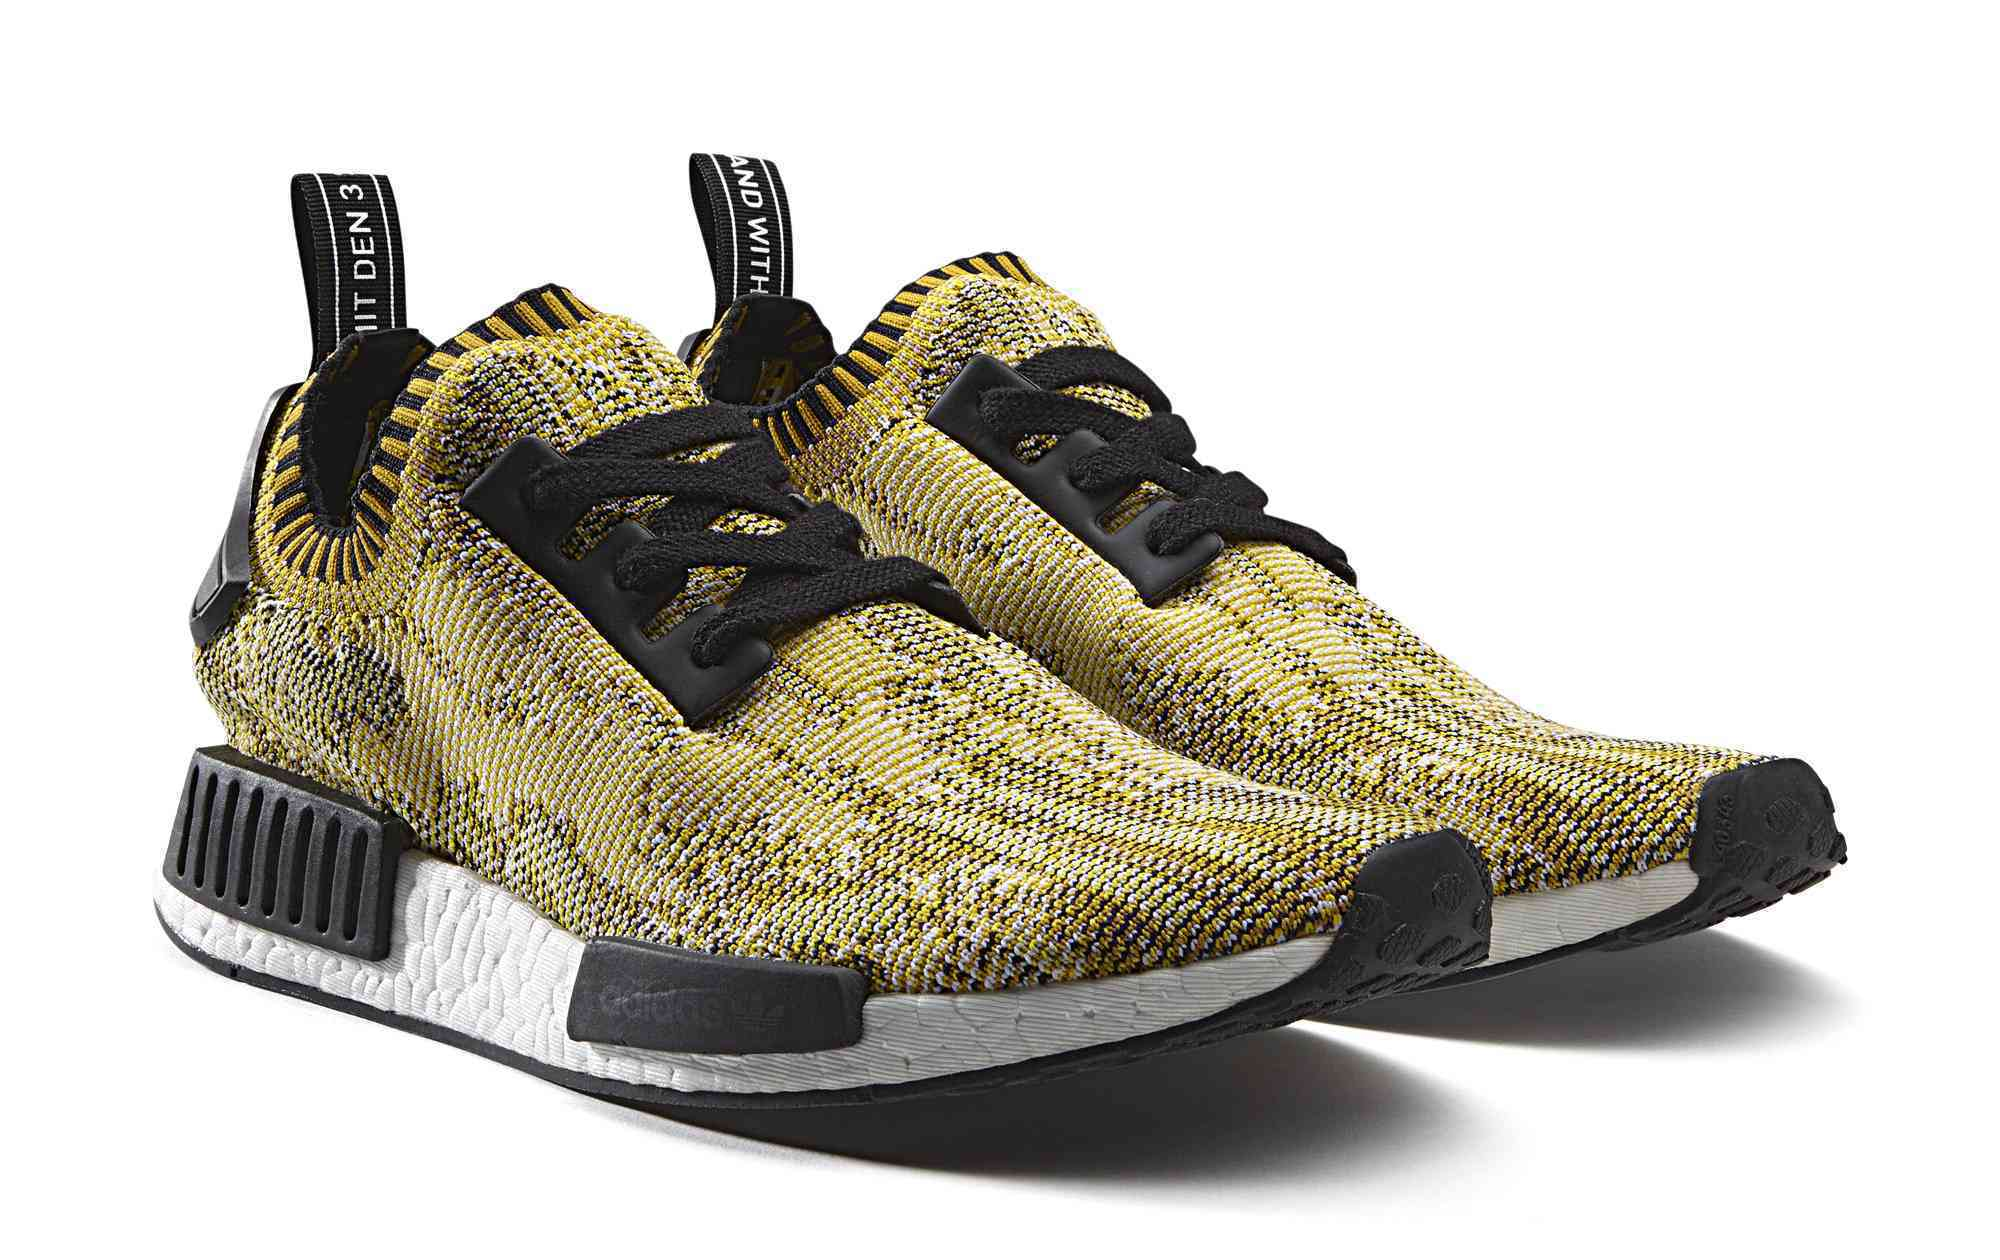 6ff9236b3fef5 Imágenes de Where To Buy Adidas Nmd Shoes In Singapore